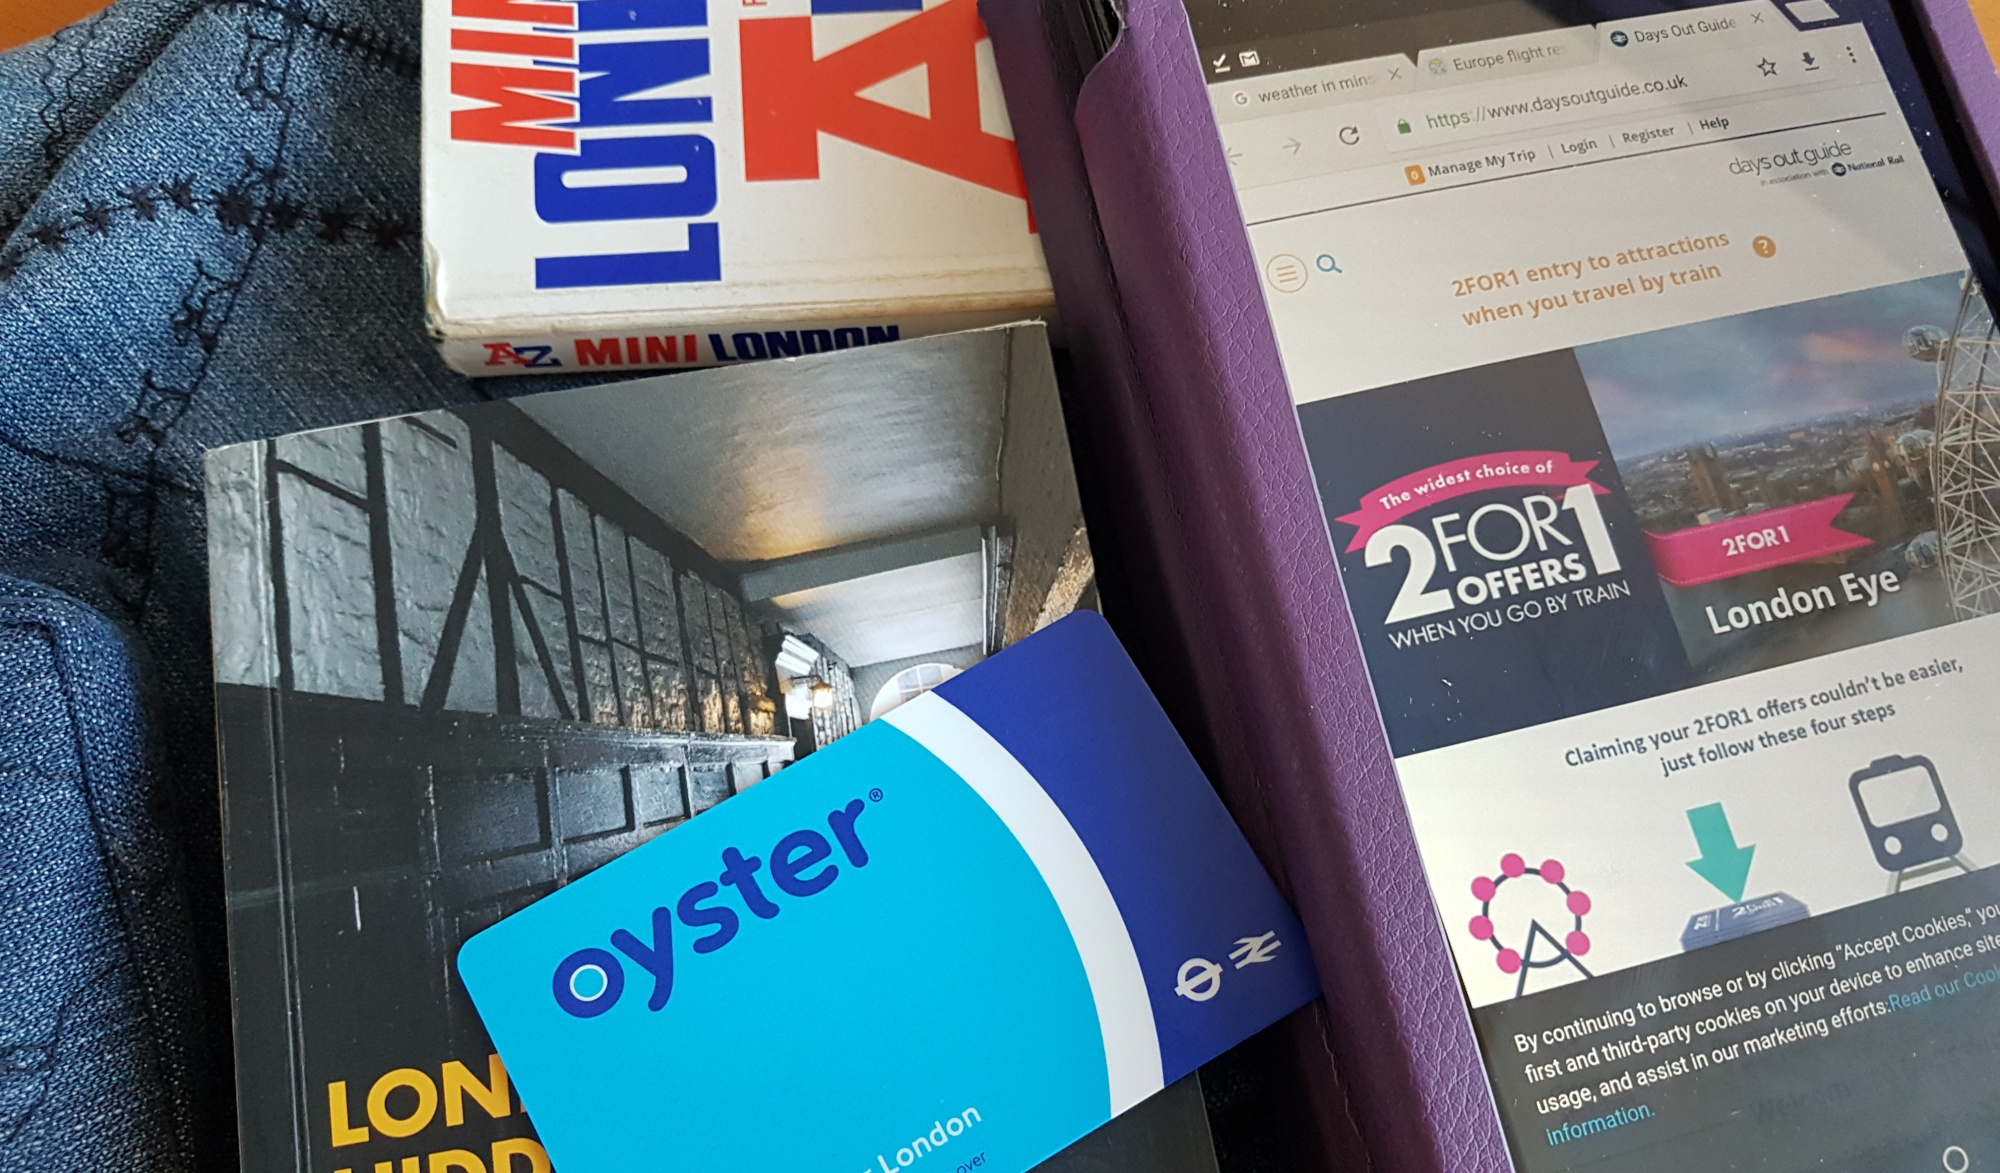 Get an Oyster card and other London transport savings ...